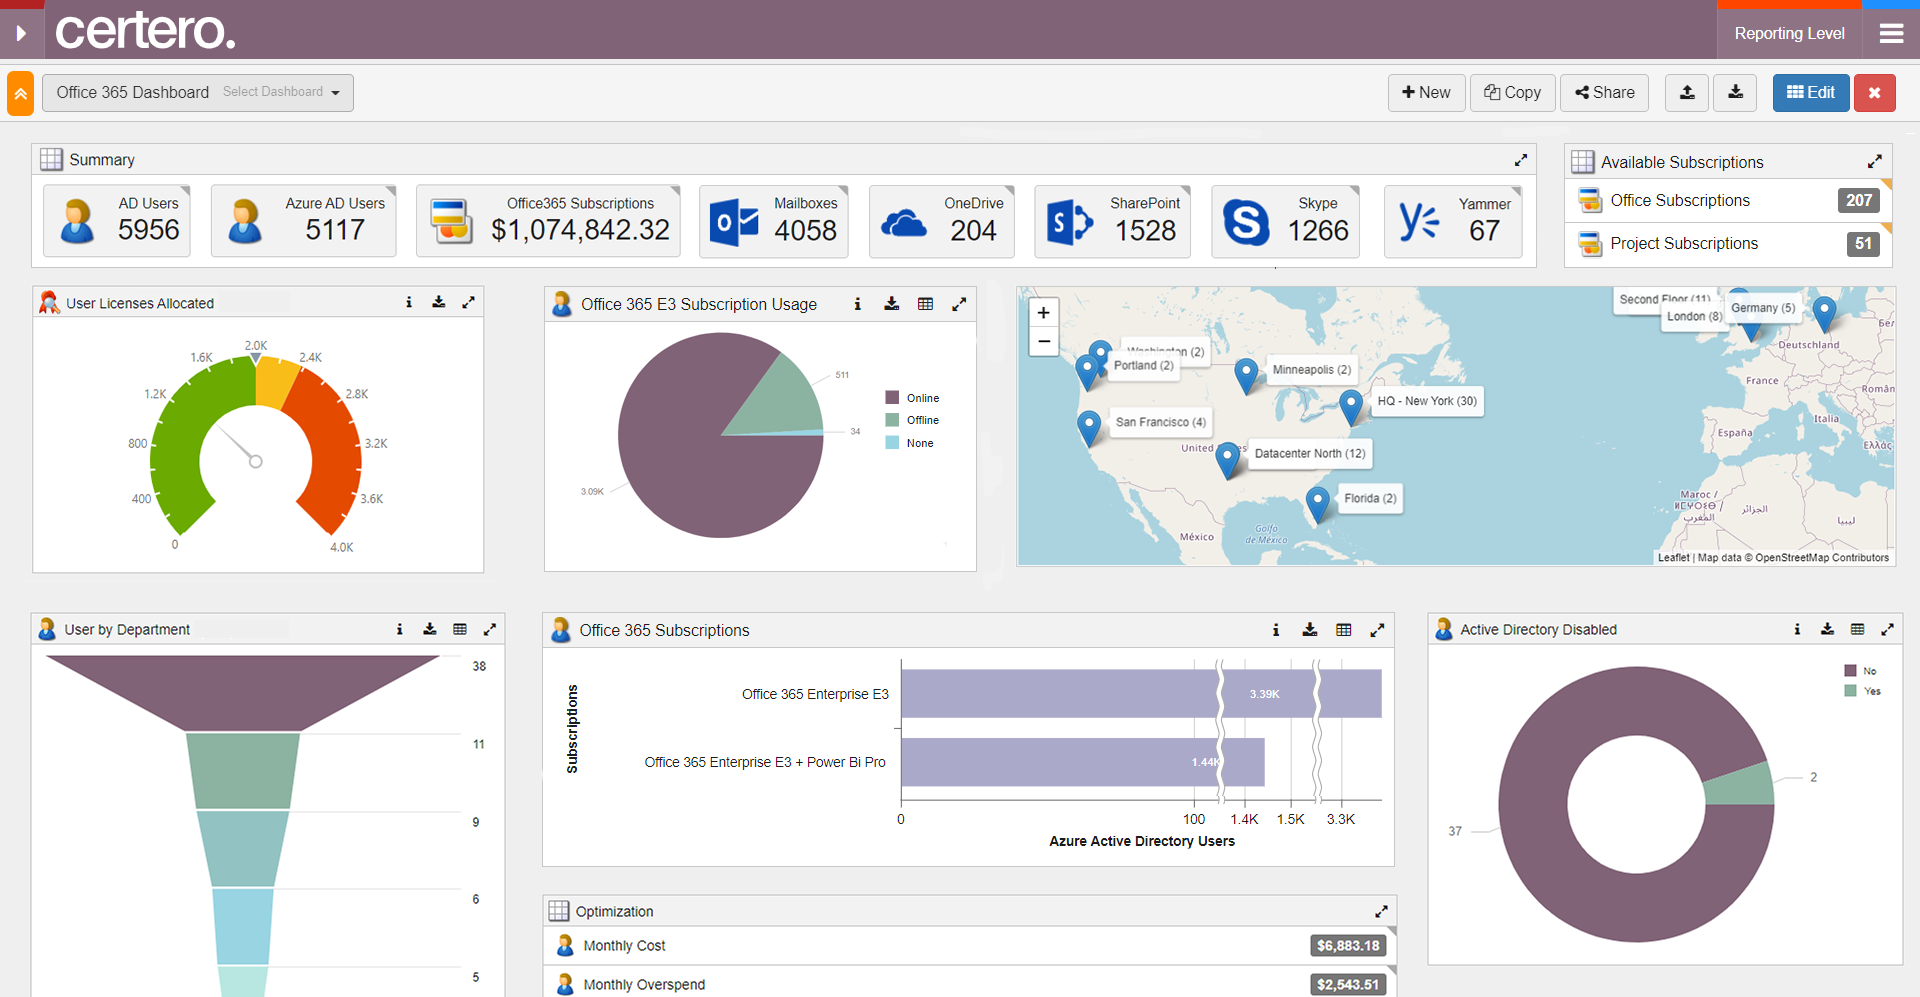 Certero for SaaS Software - O365 usage, cost & potential for optimization dashboard. Easily customize & share dashboards, with near-infinite reporting options and the ability to drill-down into underlying data, so evidence is never far away from the reports, maintained in real-time.